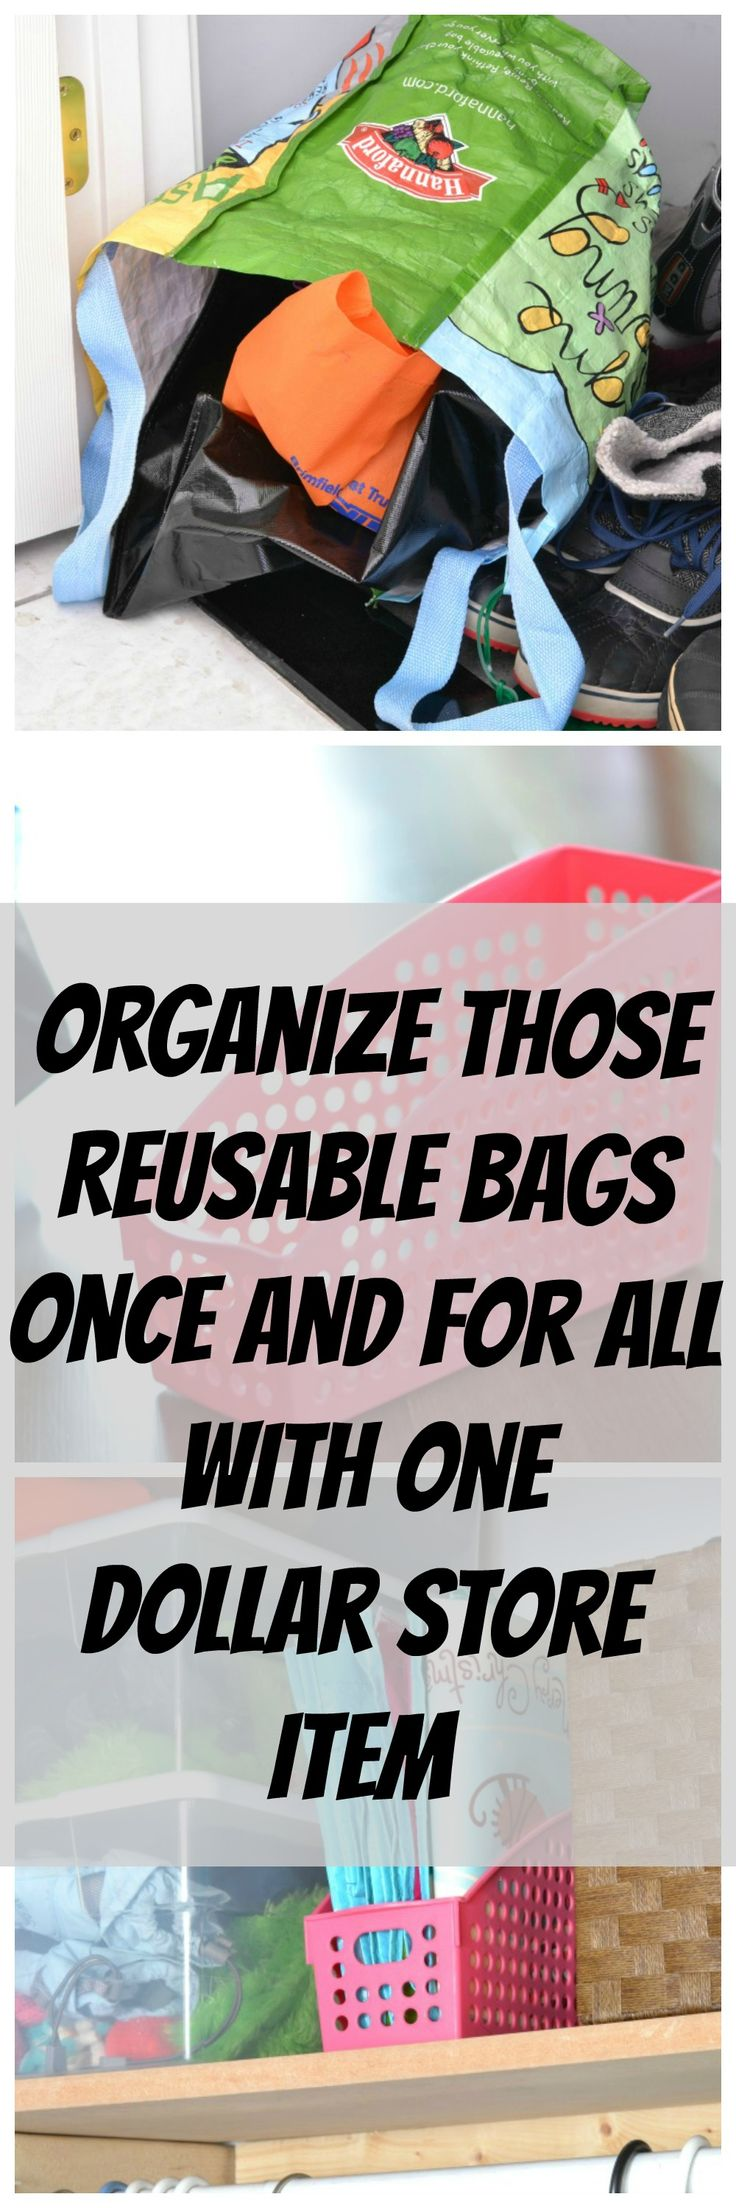 A super simple and inexpensive way to store reusable bags | Storage | Organization | iamahomemaker.com